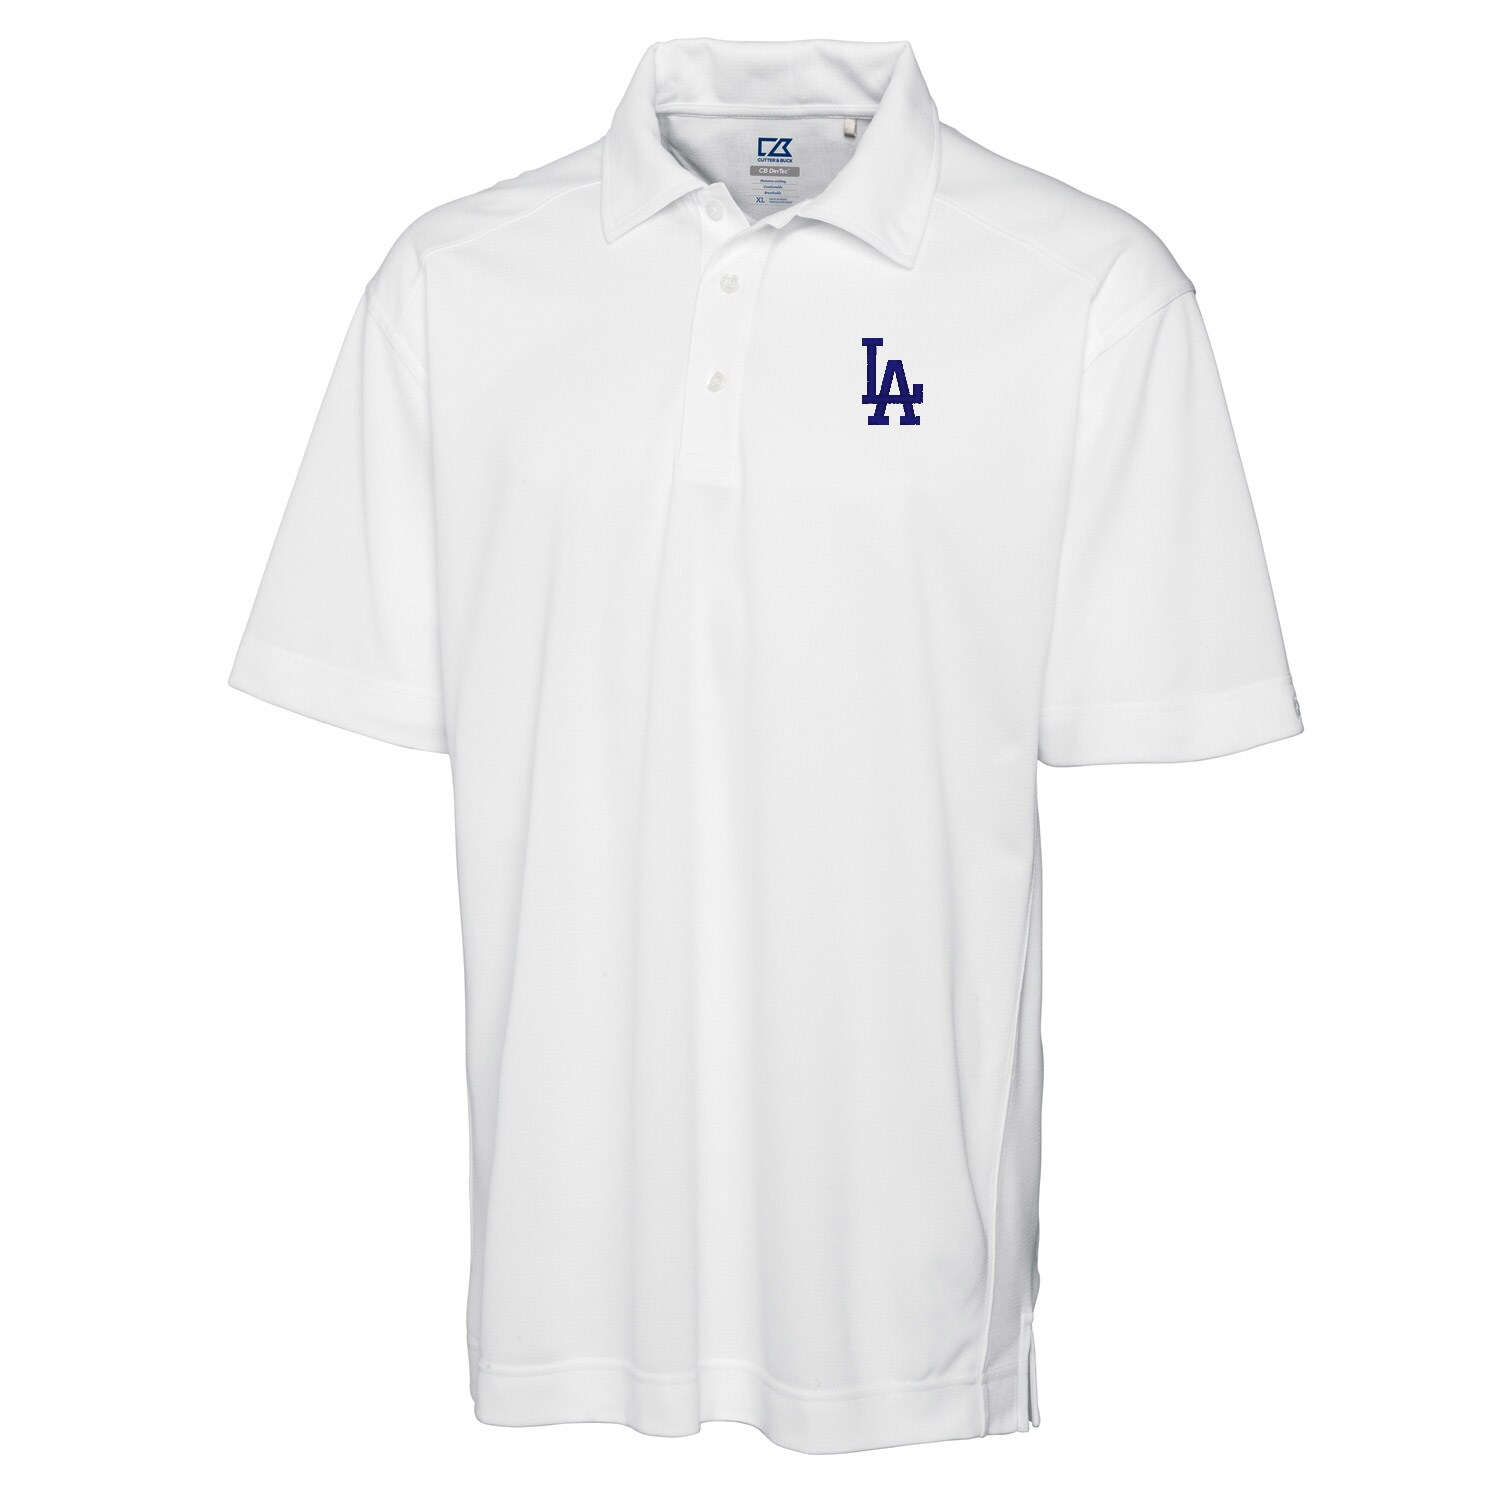 Los Angeles Dodgers Cutter & Buck Big & Tall DryTec Genre Polo - White